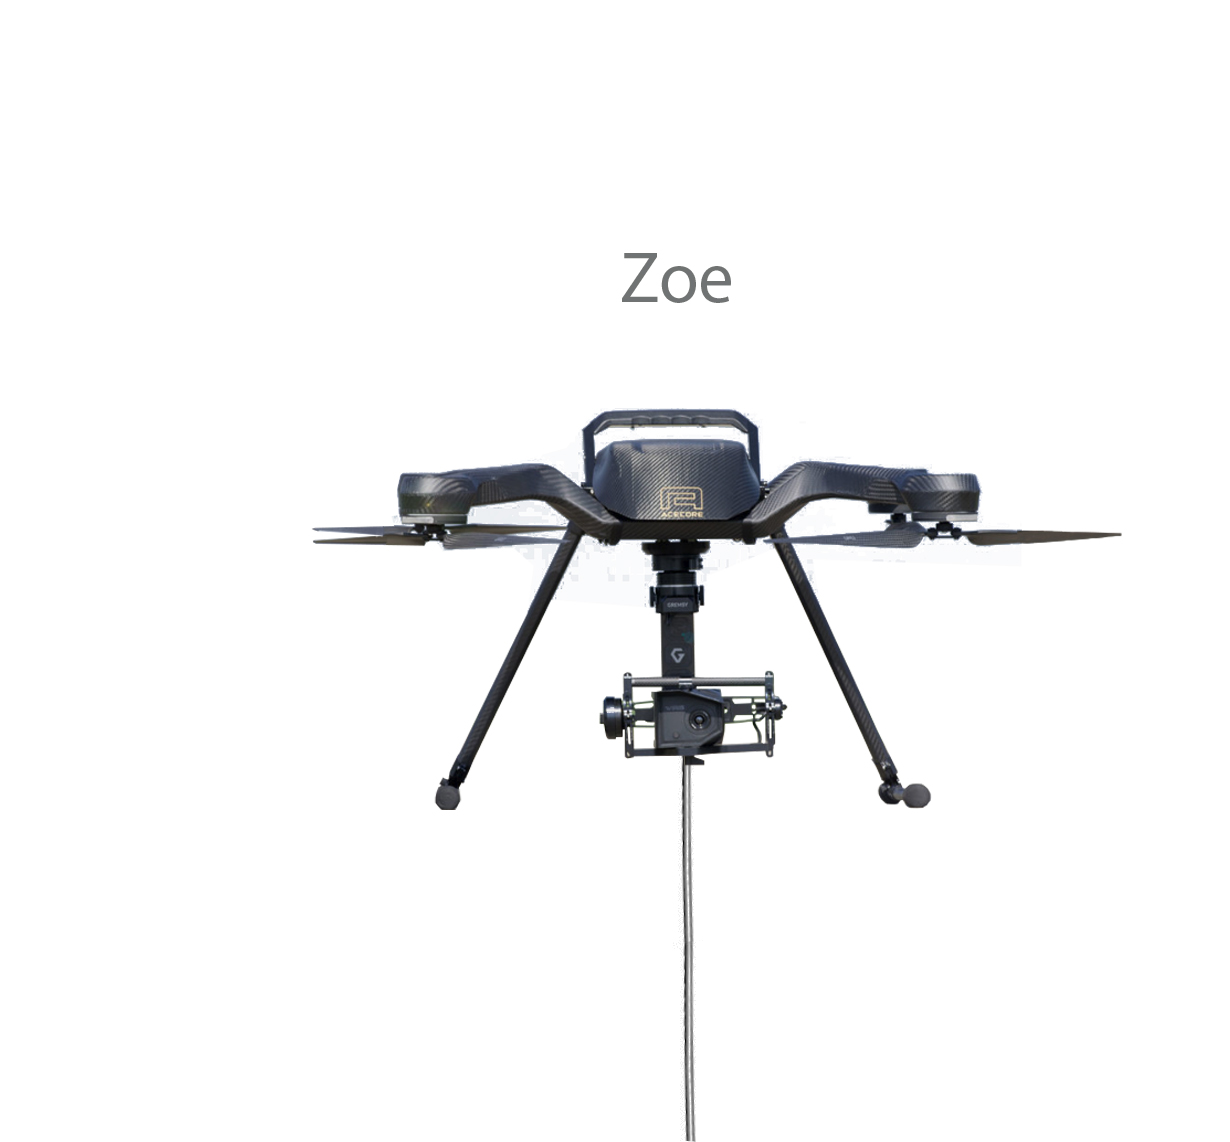 Acecore Zoe is compatible with the Ligh-T V.3 tethered Drone Station